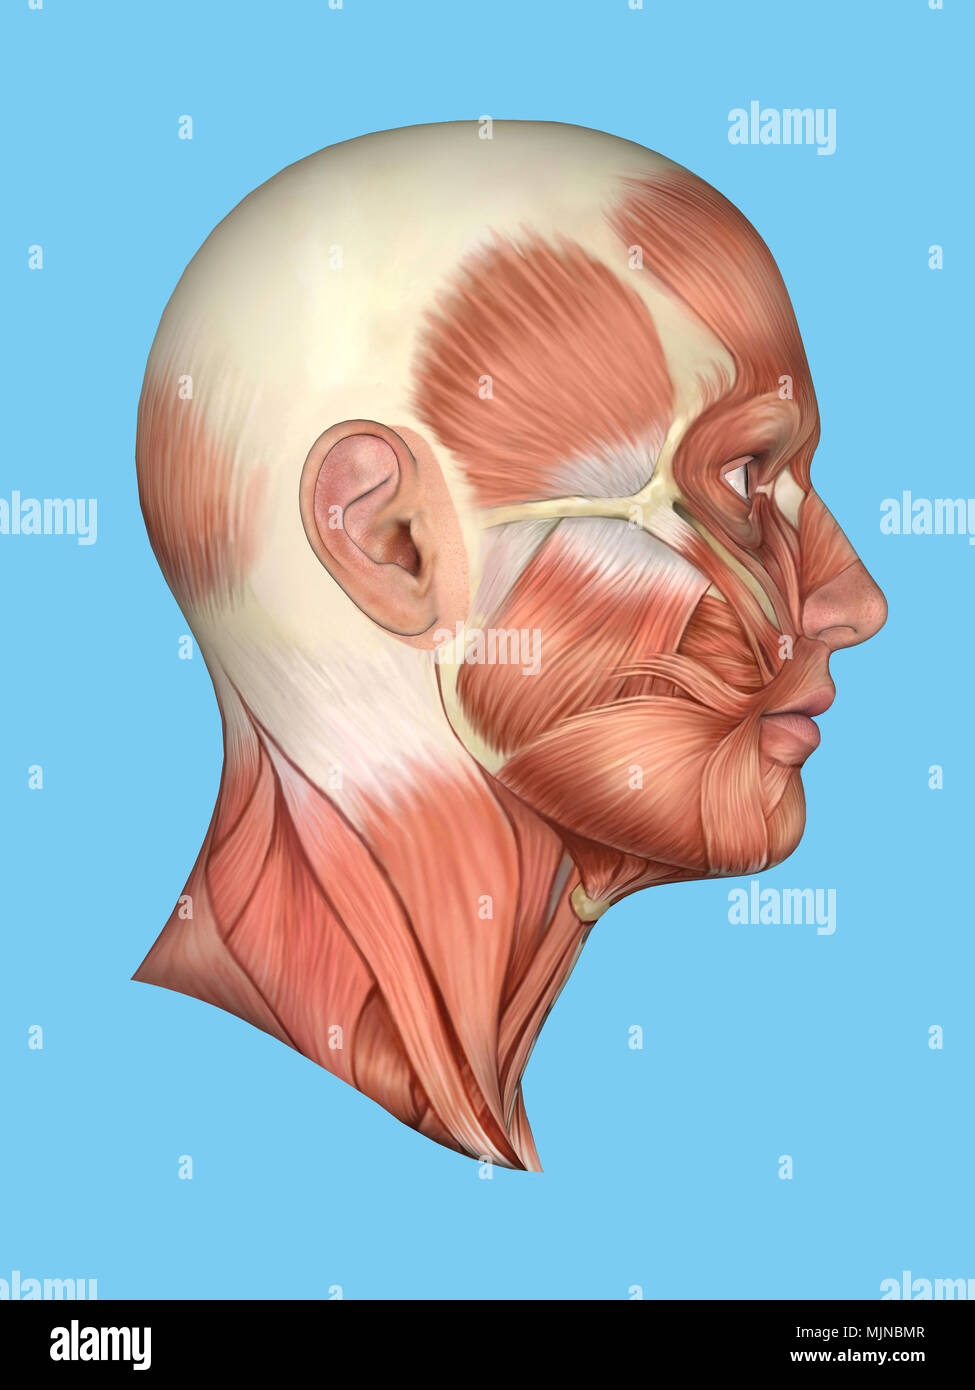 hight resolution of anatomy side view of face stock photo 183637687 alamy diagram of side of face